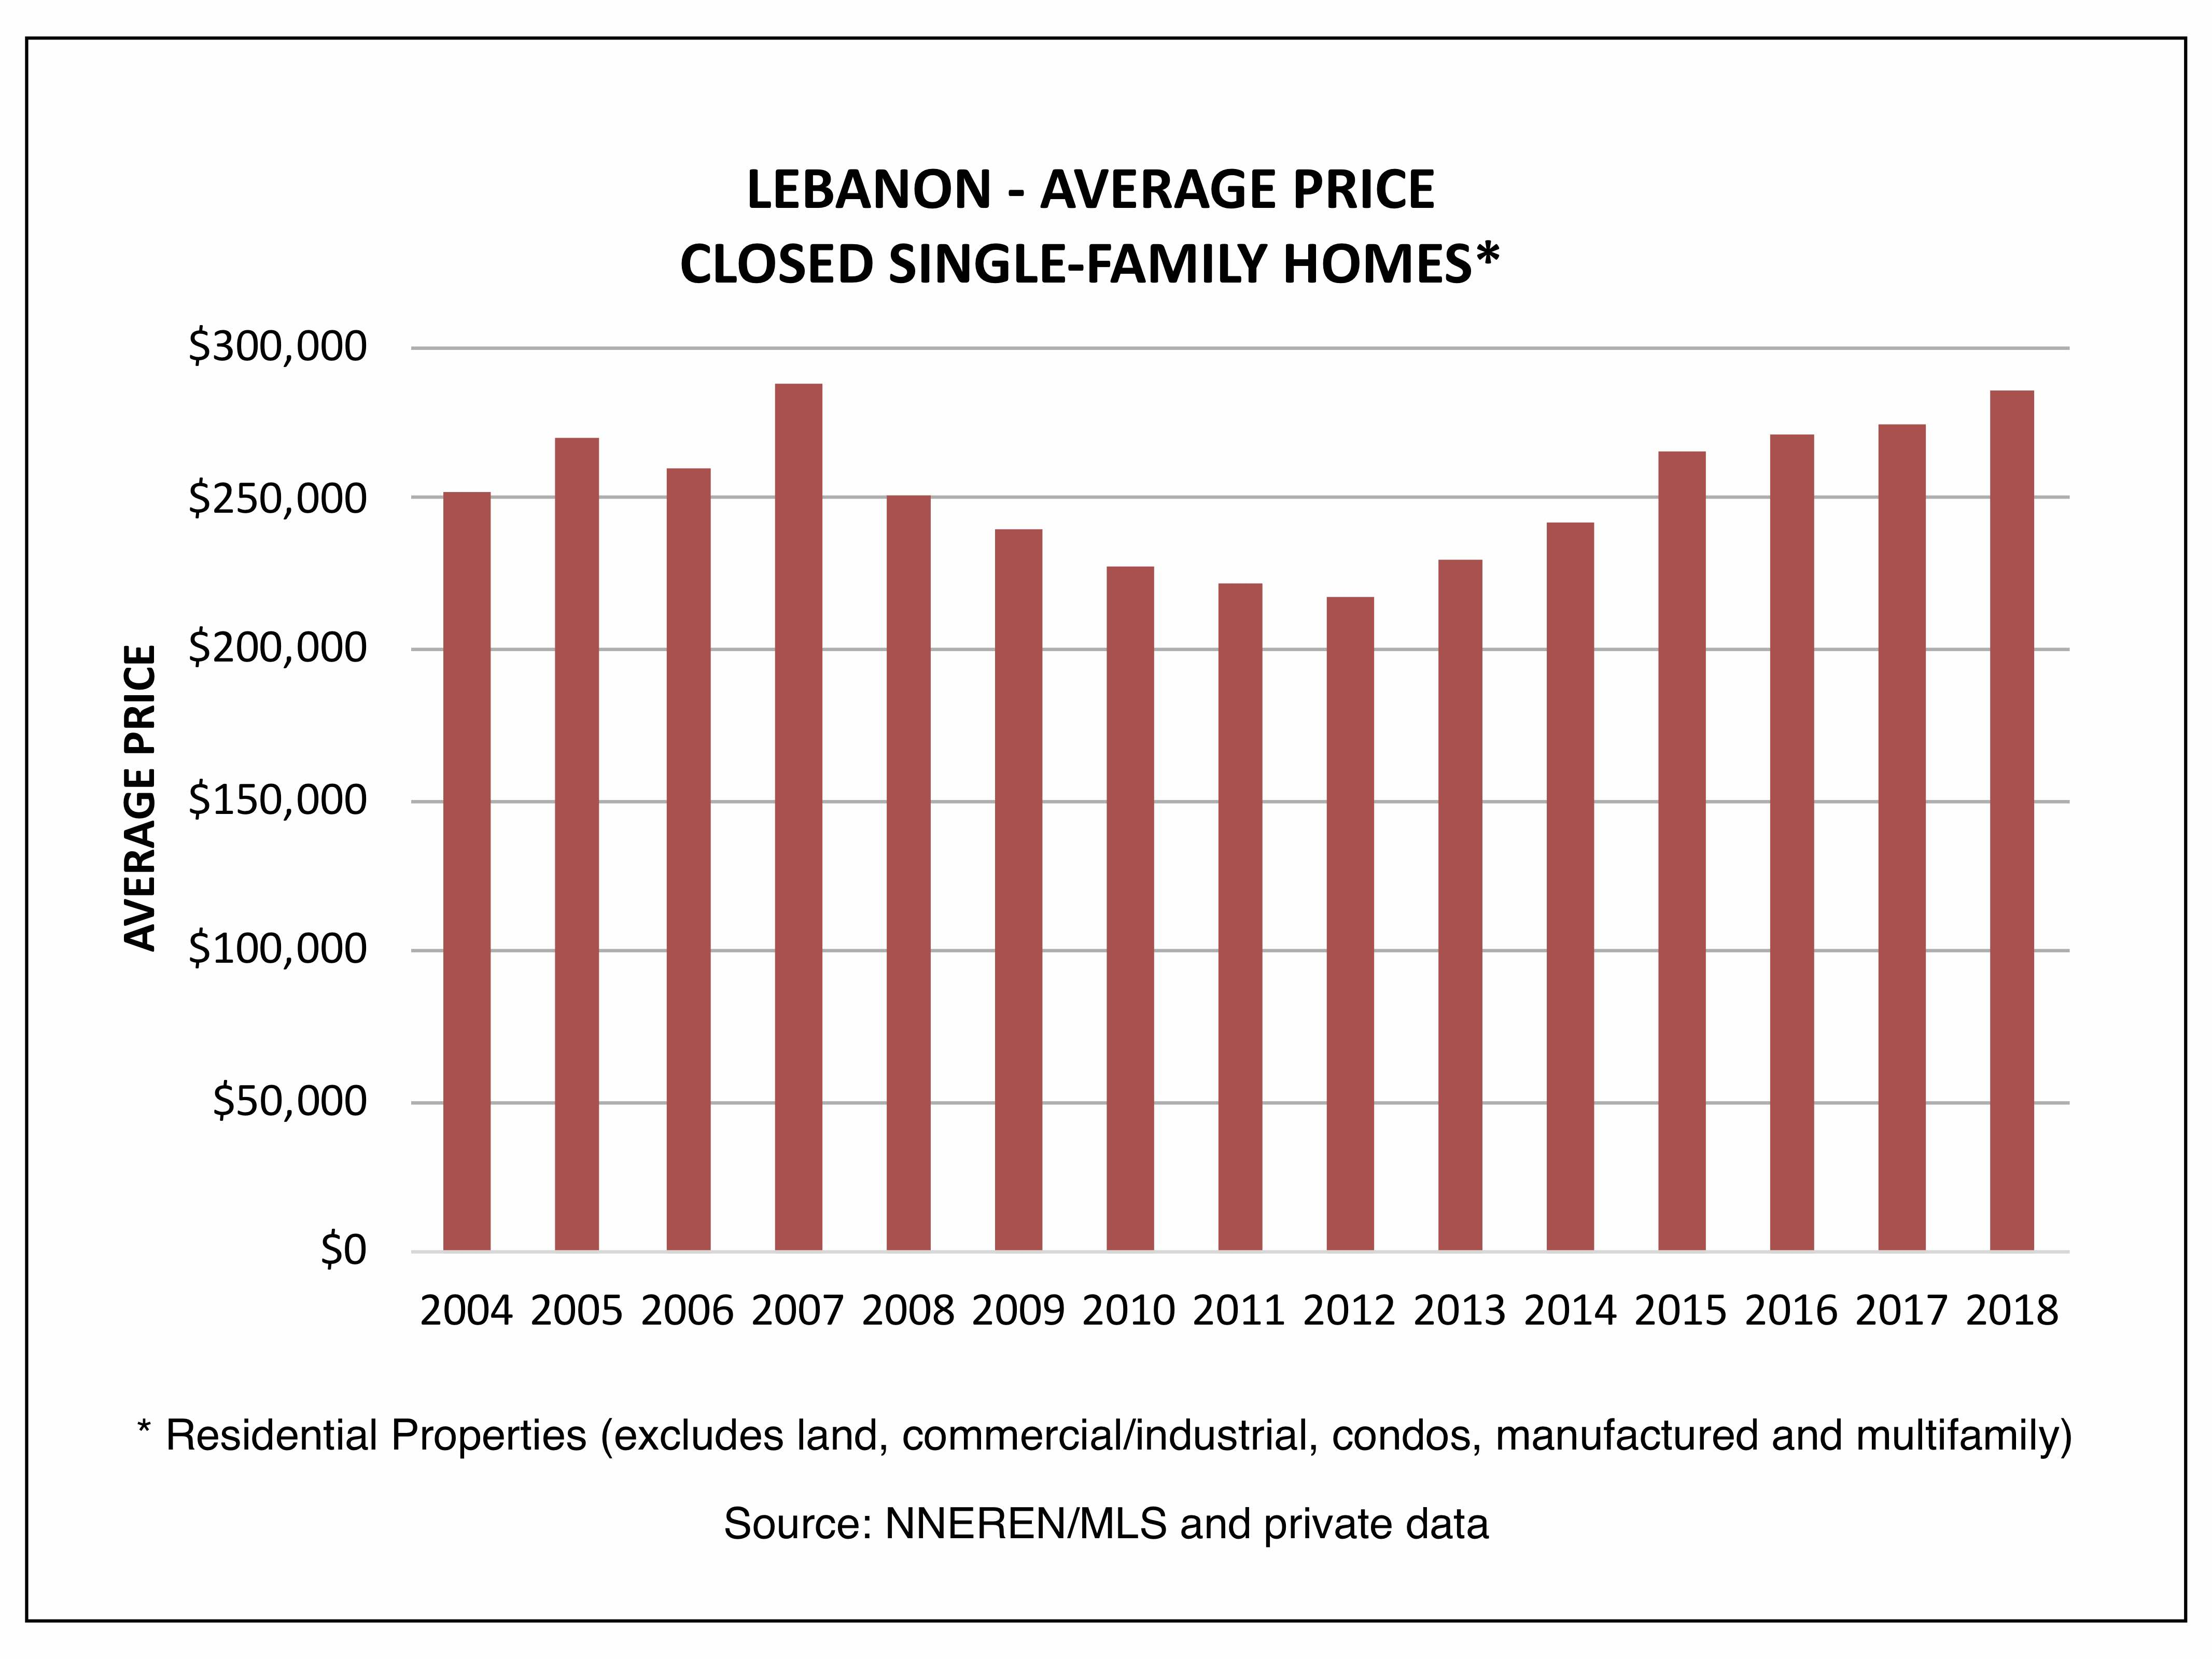 Lebanon NH Real Estate - Average Price, Closed Homes